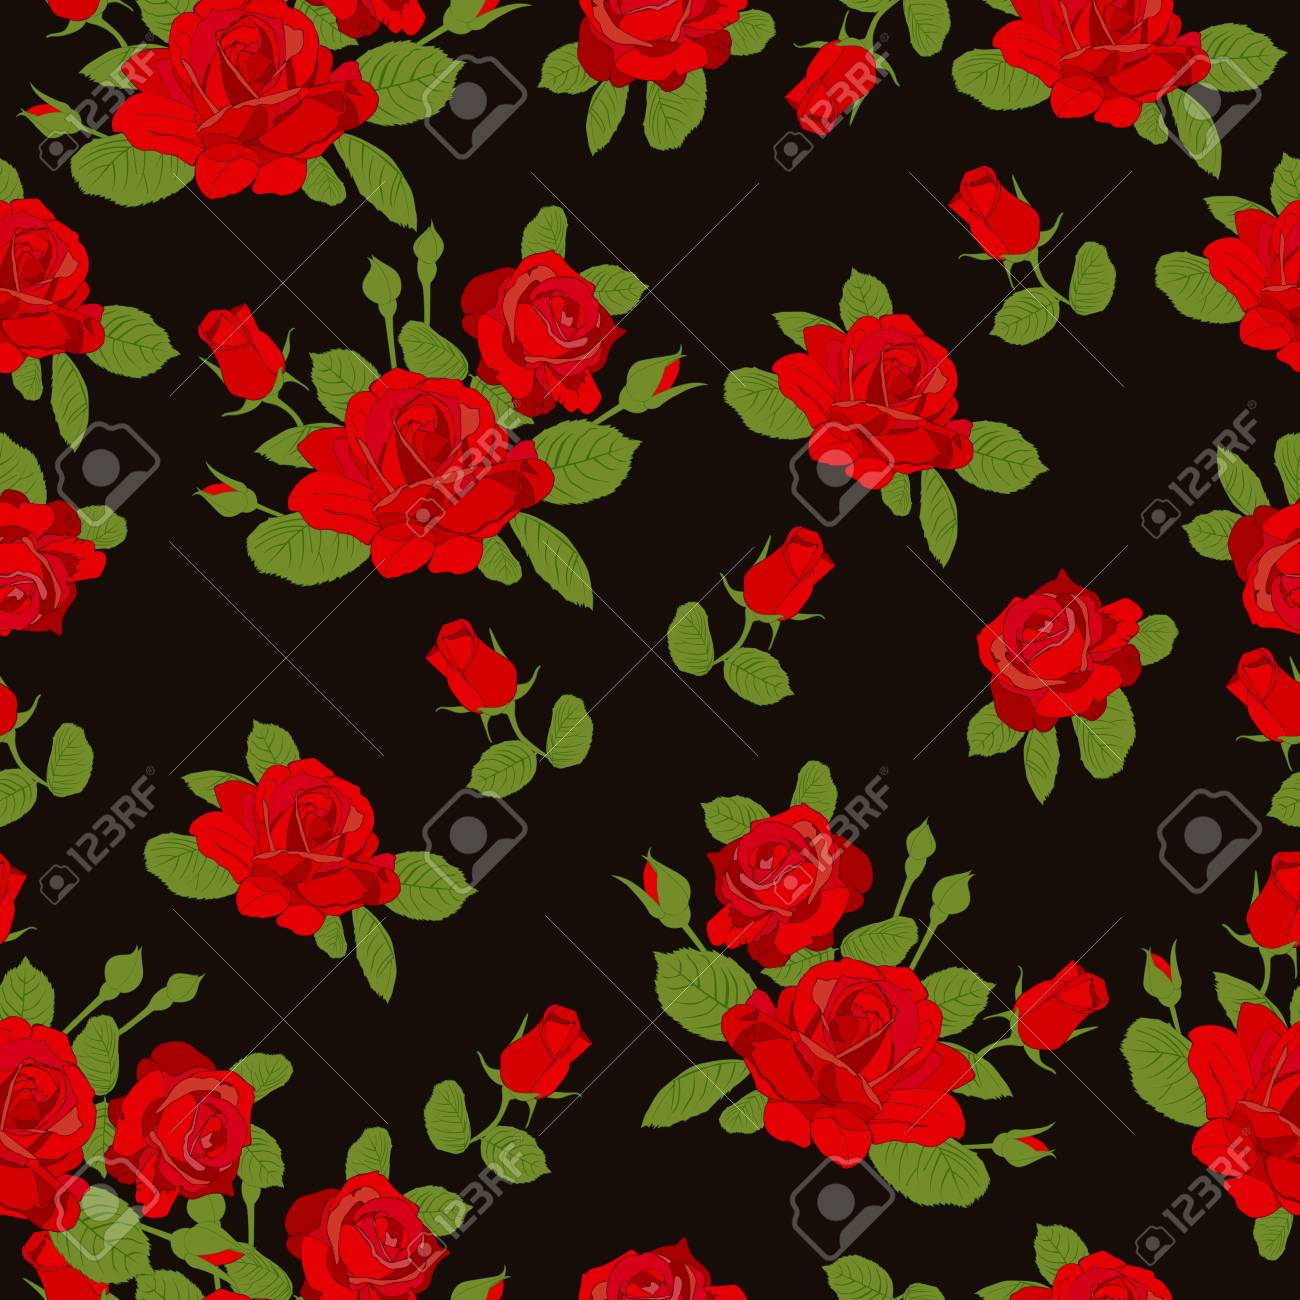 Red Rose Flower Pattern On Black Background Red Rose Floral